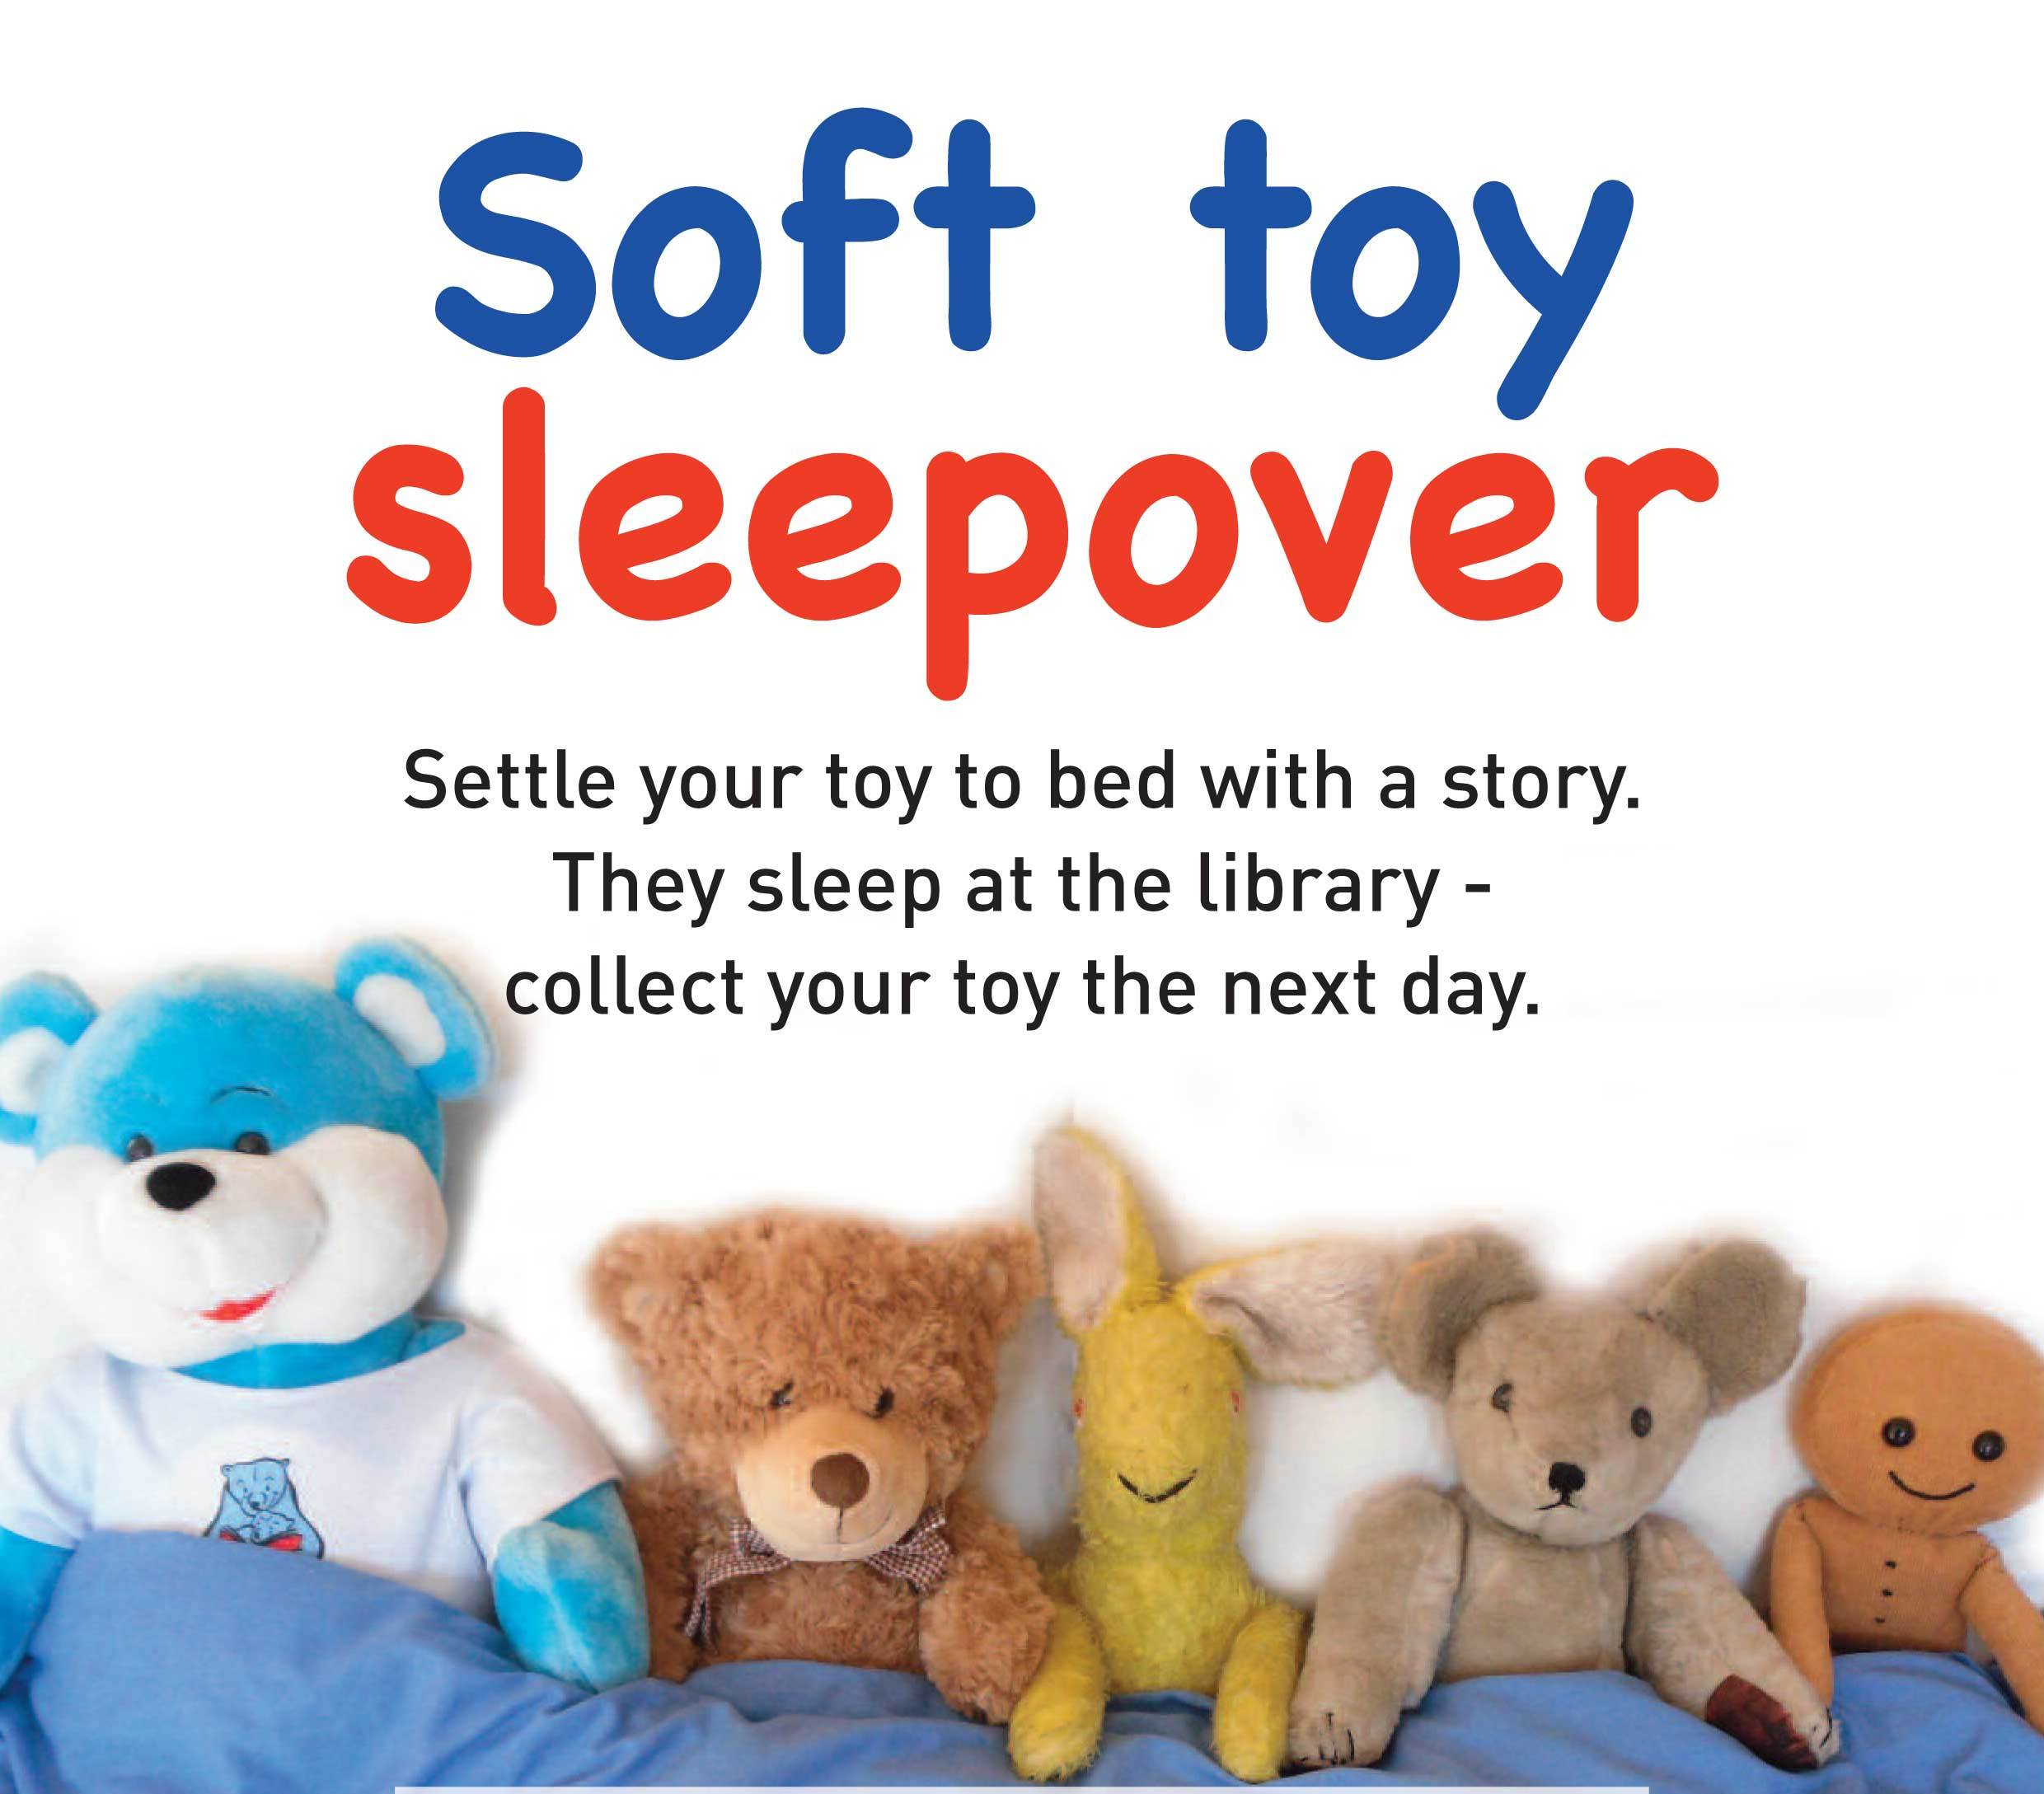 Soft toy sleepover